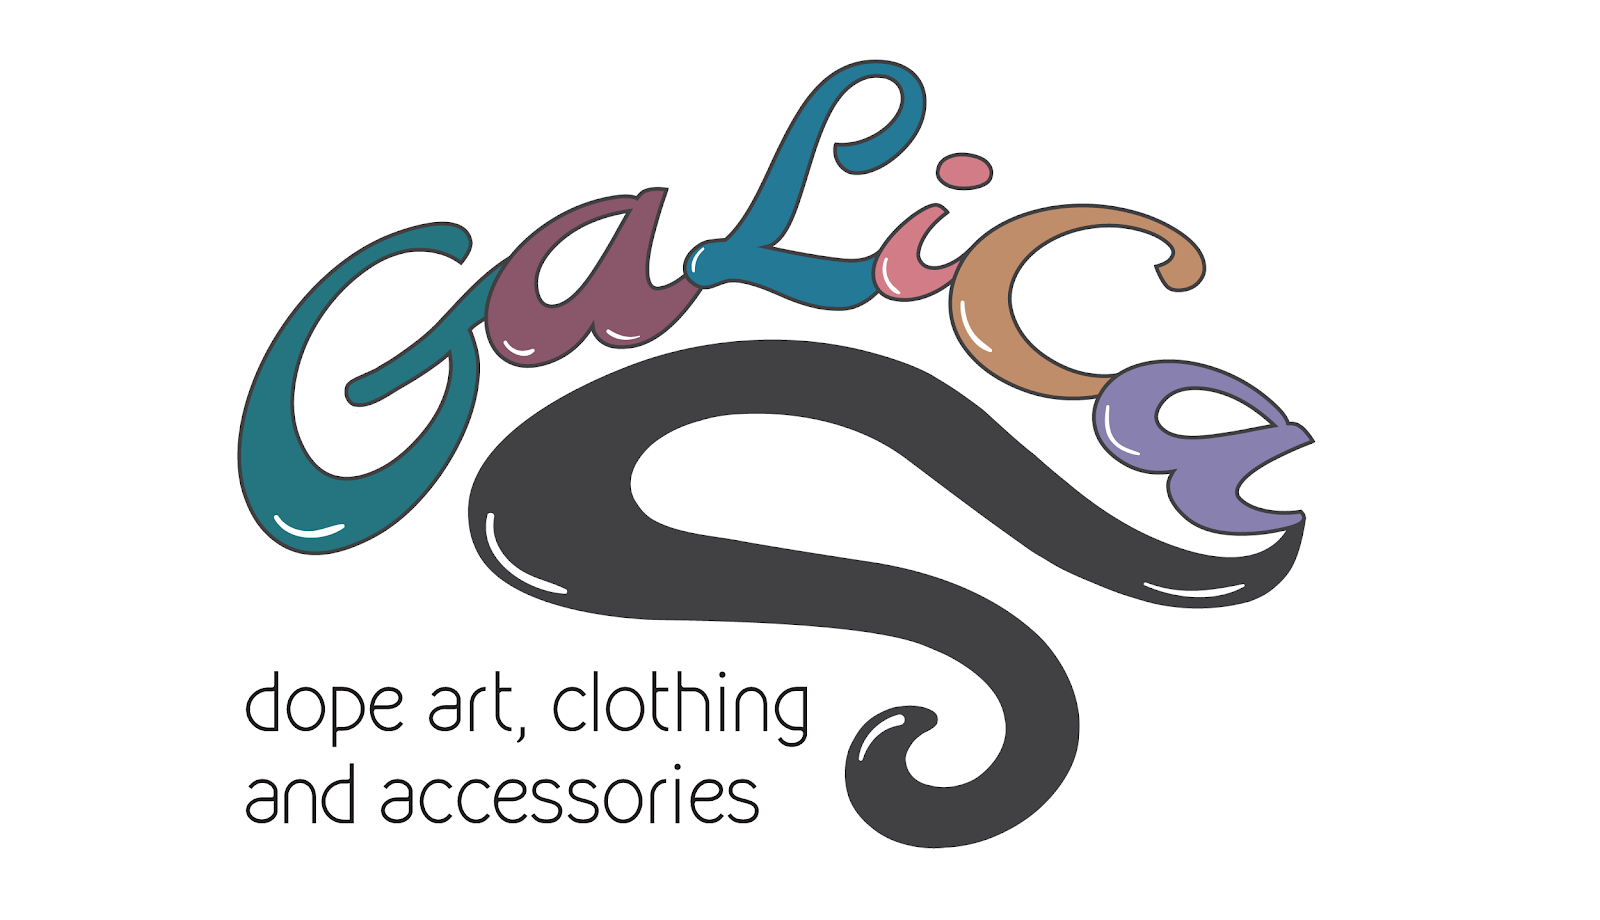 Unique Affordable Hipster Art, Clothing, and Accessories by Galica